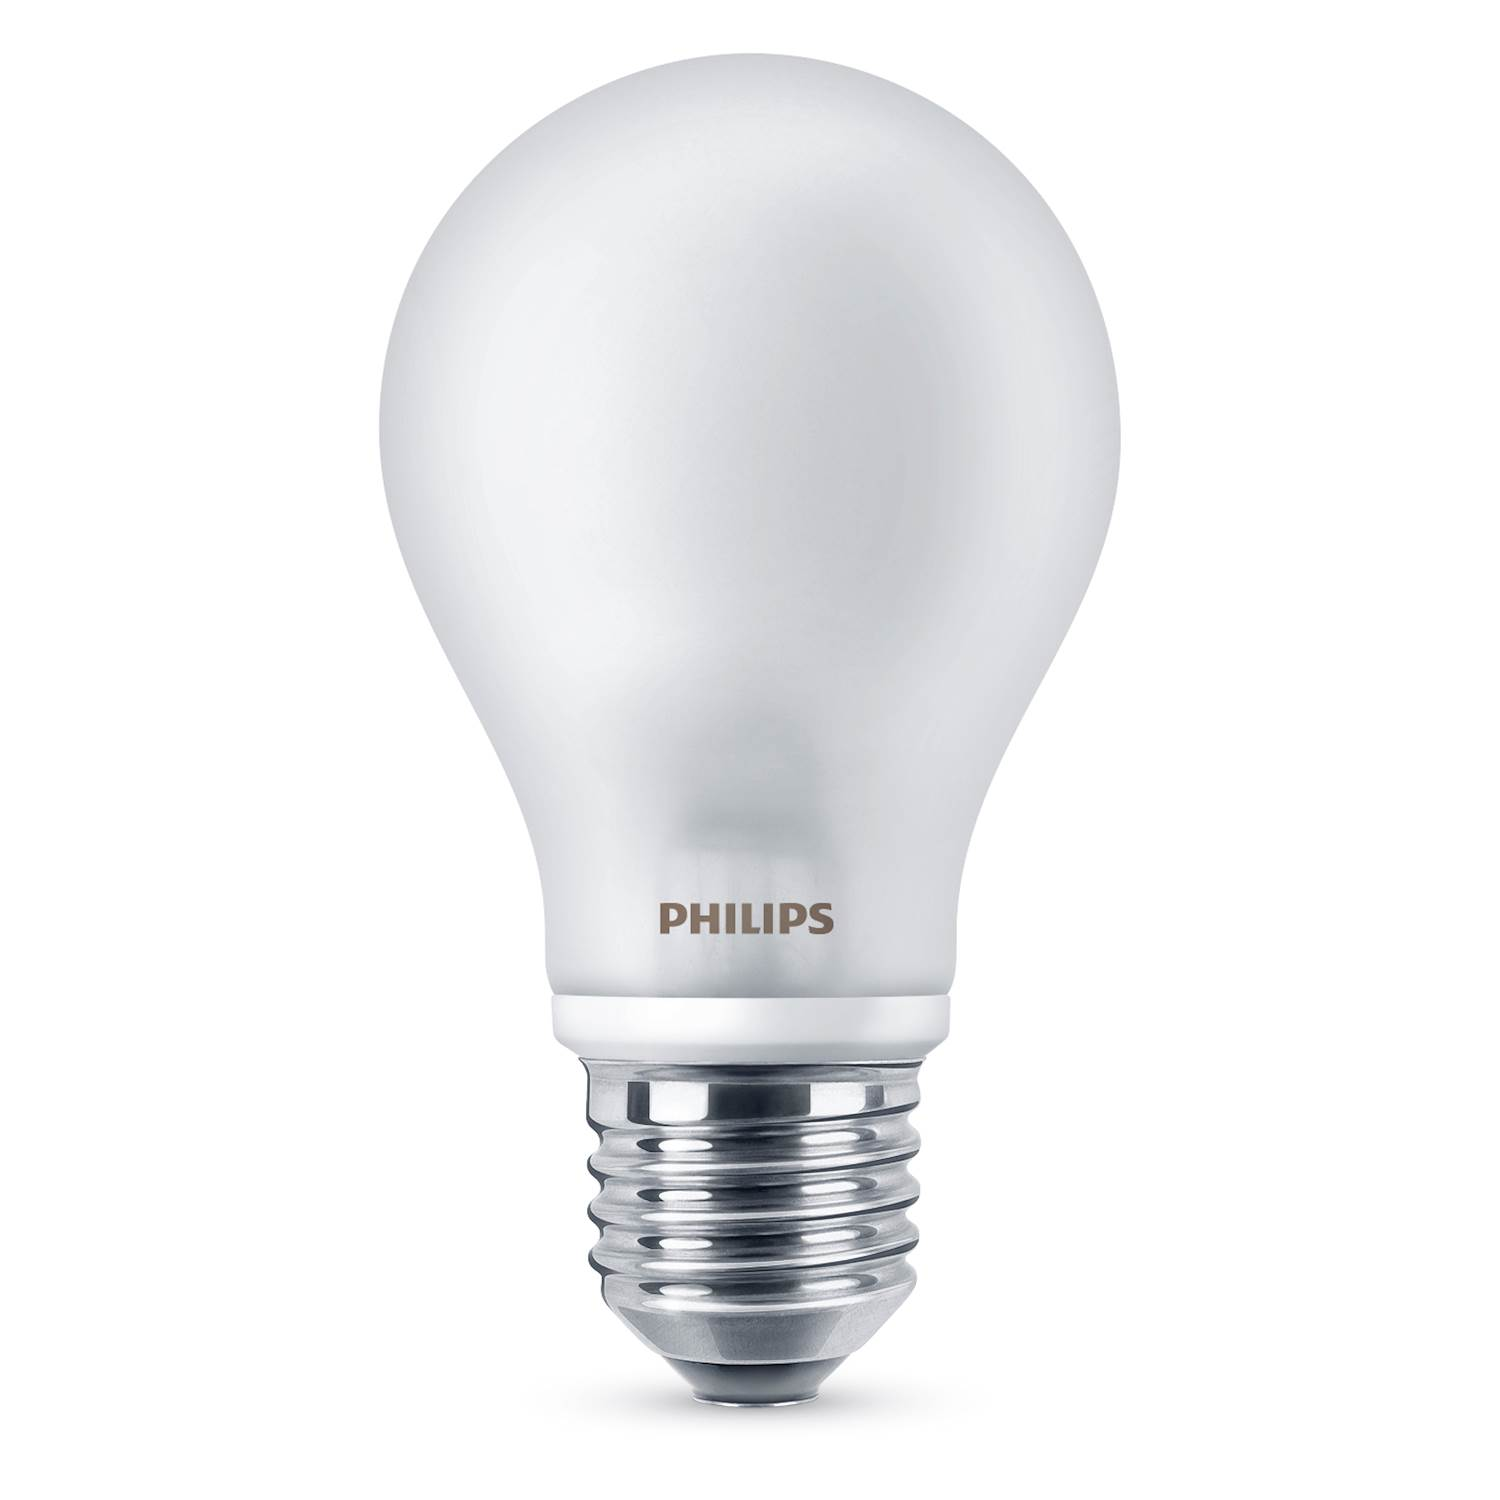 Philips LEDCL NOR 6,7W E27 VV FR ND 2P